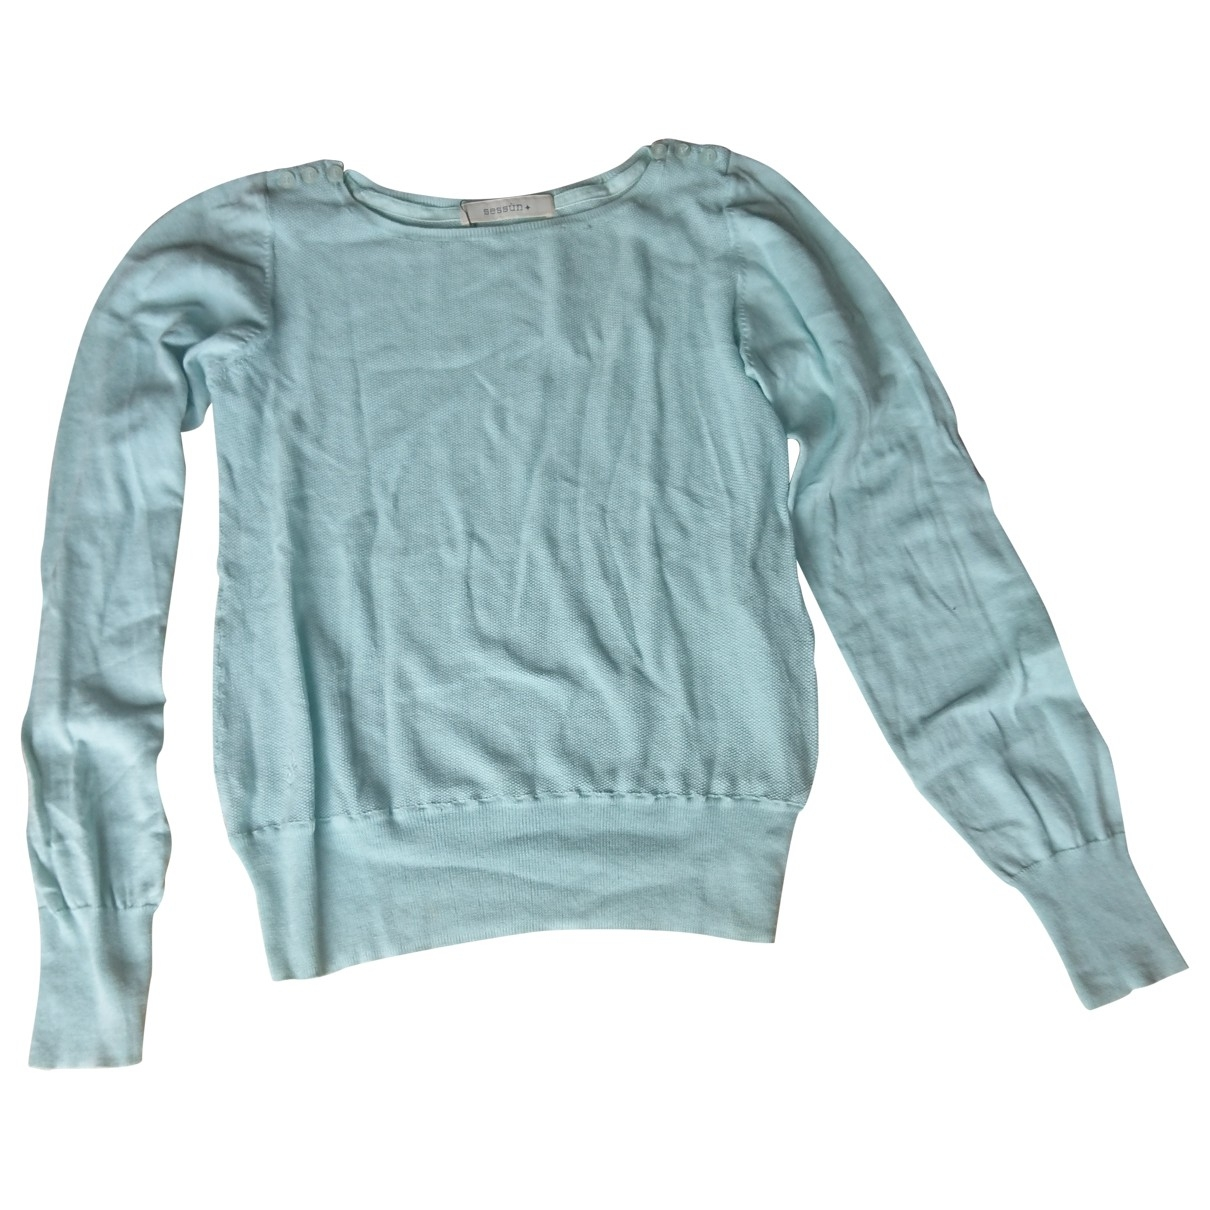 Sessun \N Turquoise Cotton Knitwear for Women XS International